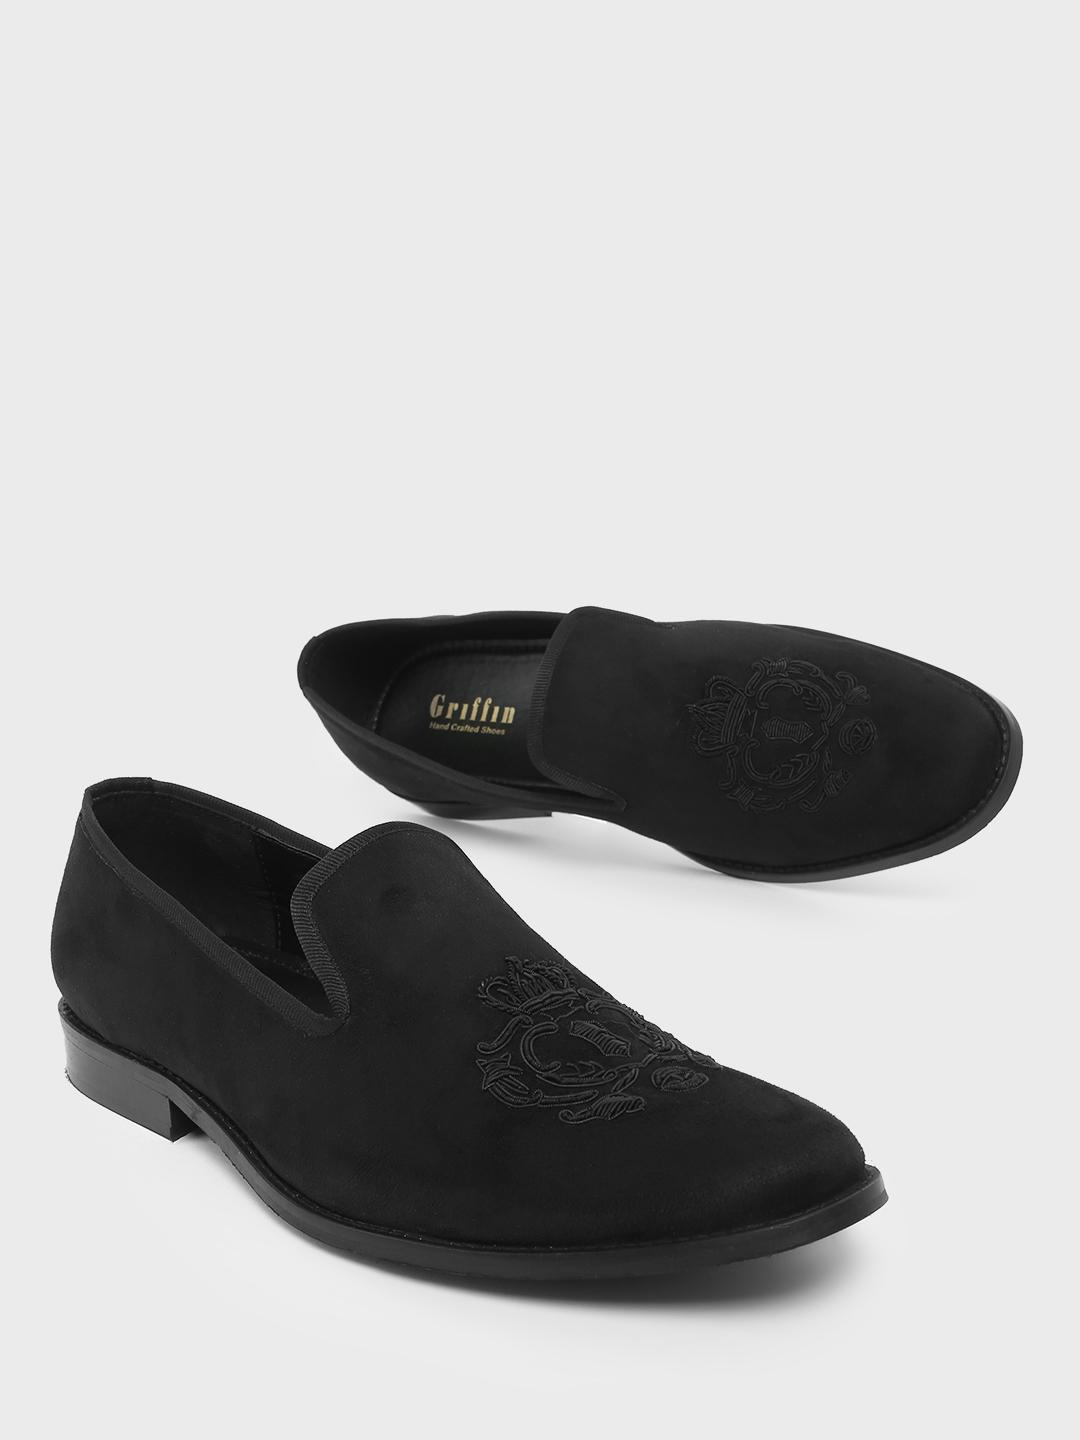 Griffin Black Loafers with Zardozi Embroidery 1